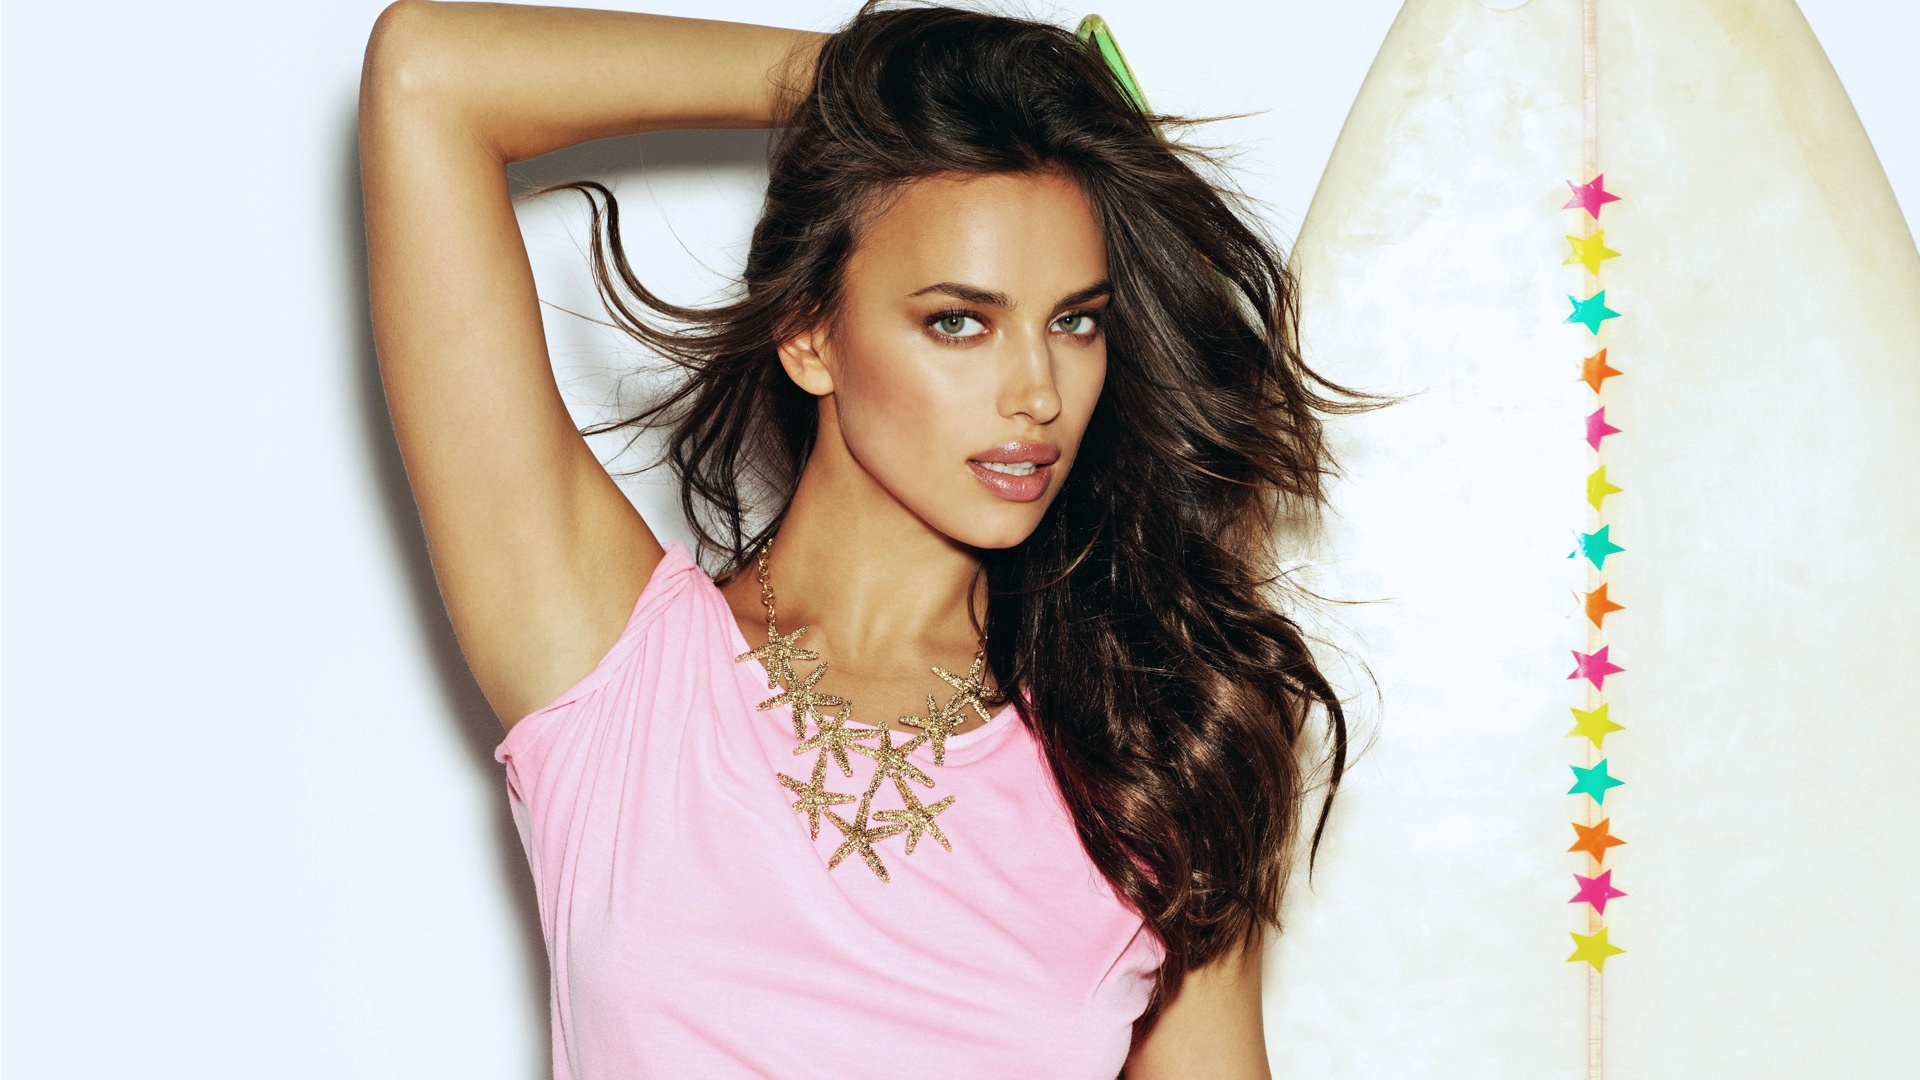 irina shayk wallpapers hd A2